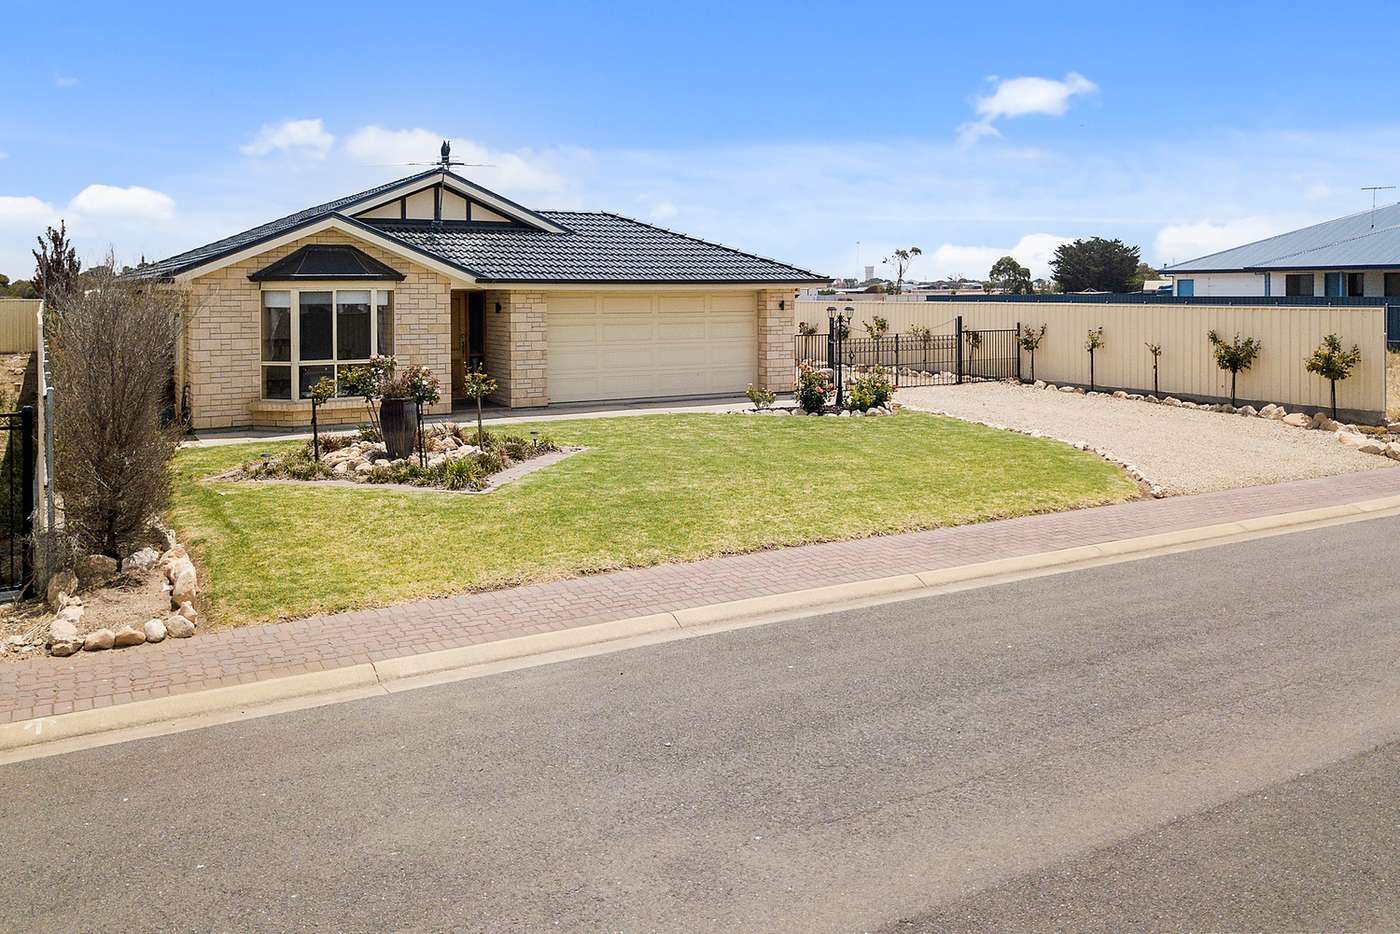 Main view of Homely house listing, 22 Compass Road, Edithburgh SA 5583